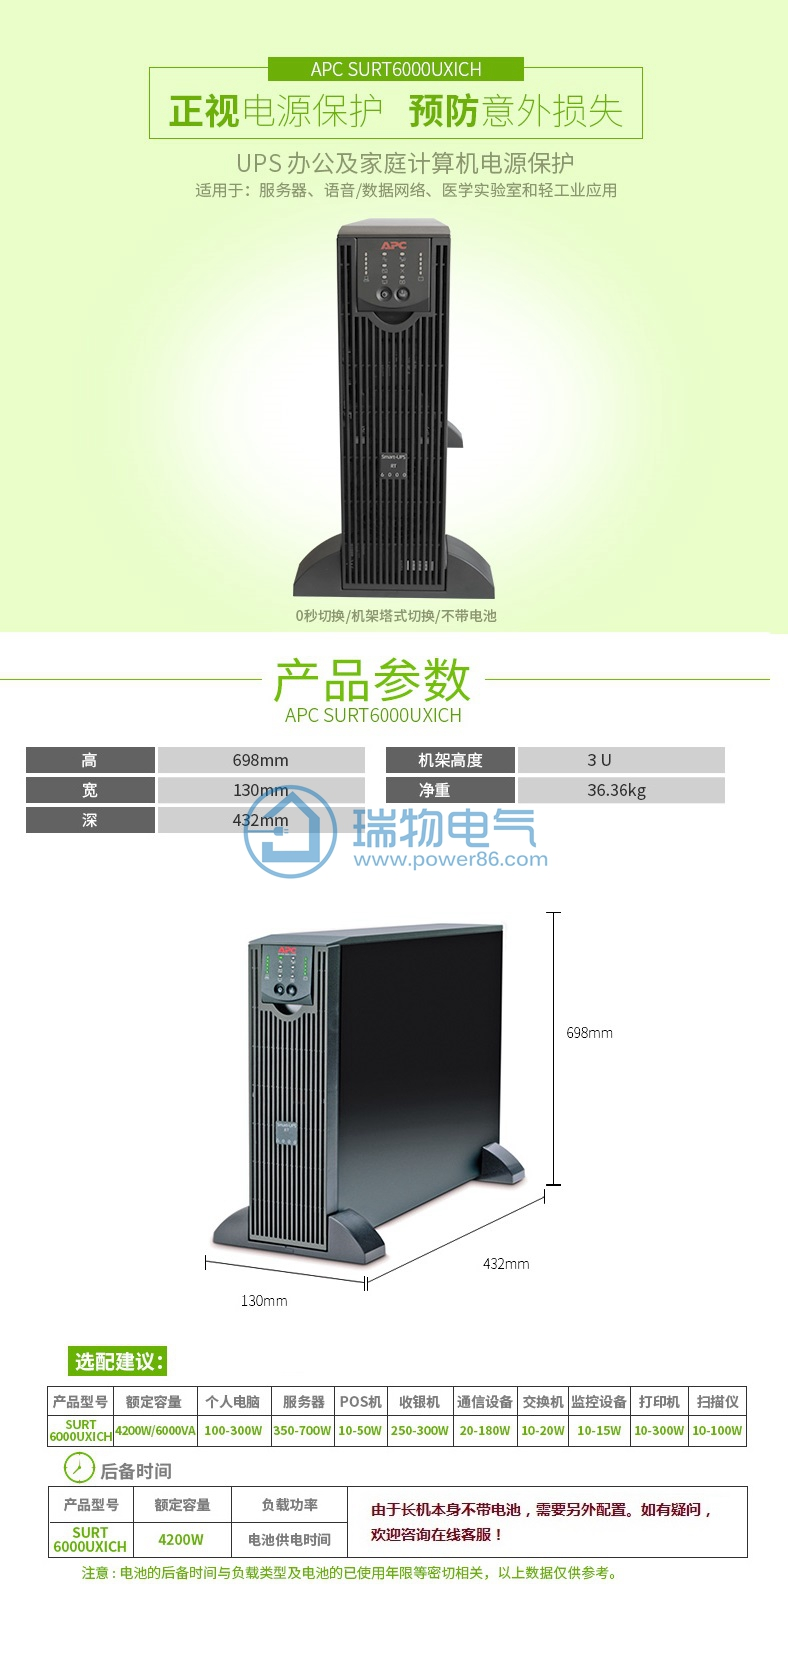 产品介绍http://www.power86.com/rs1/ups/14/132/80/80_c0.jpg